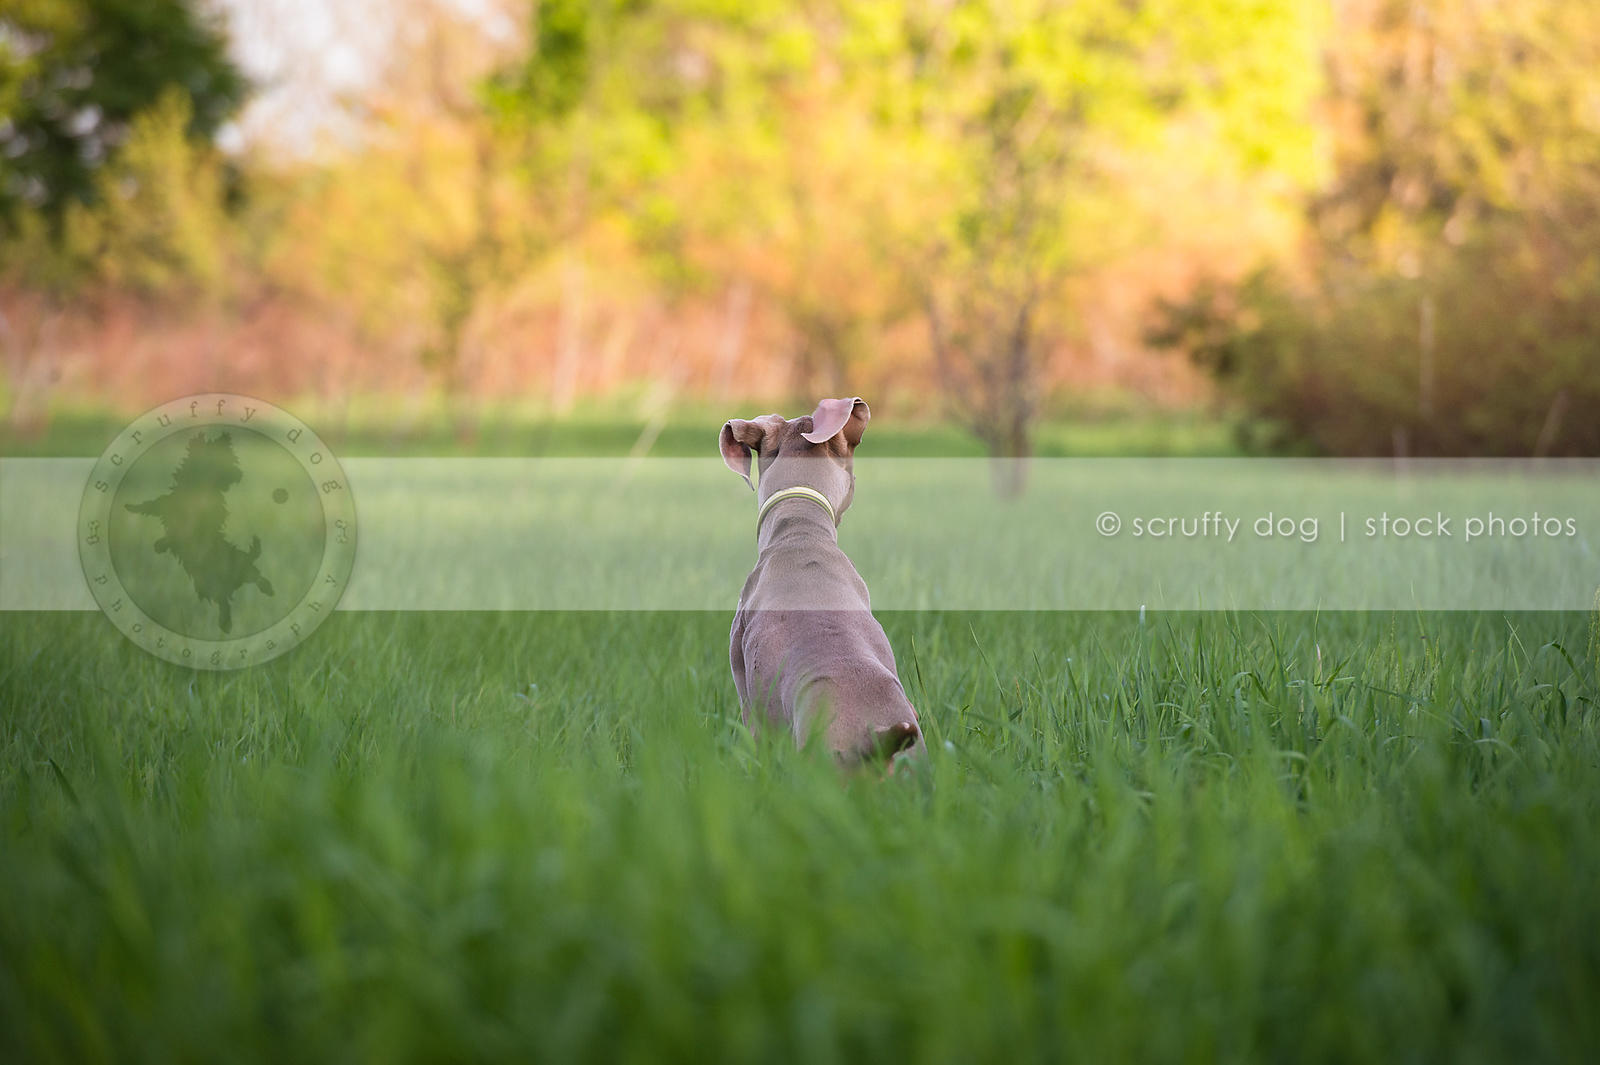 grey dog with ears from behind looking away in meadow grasses